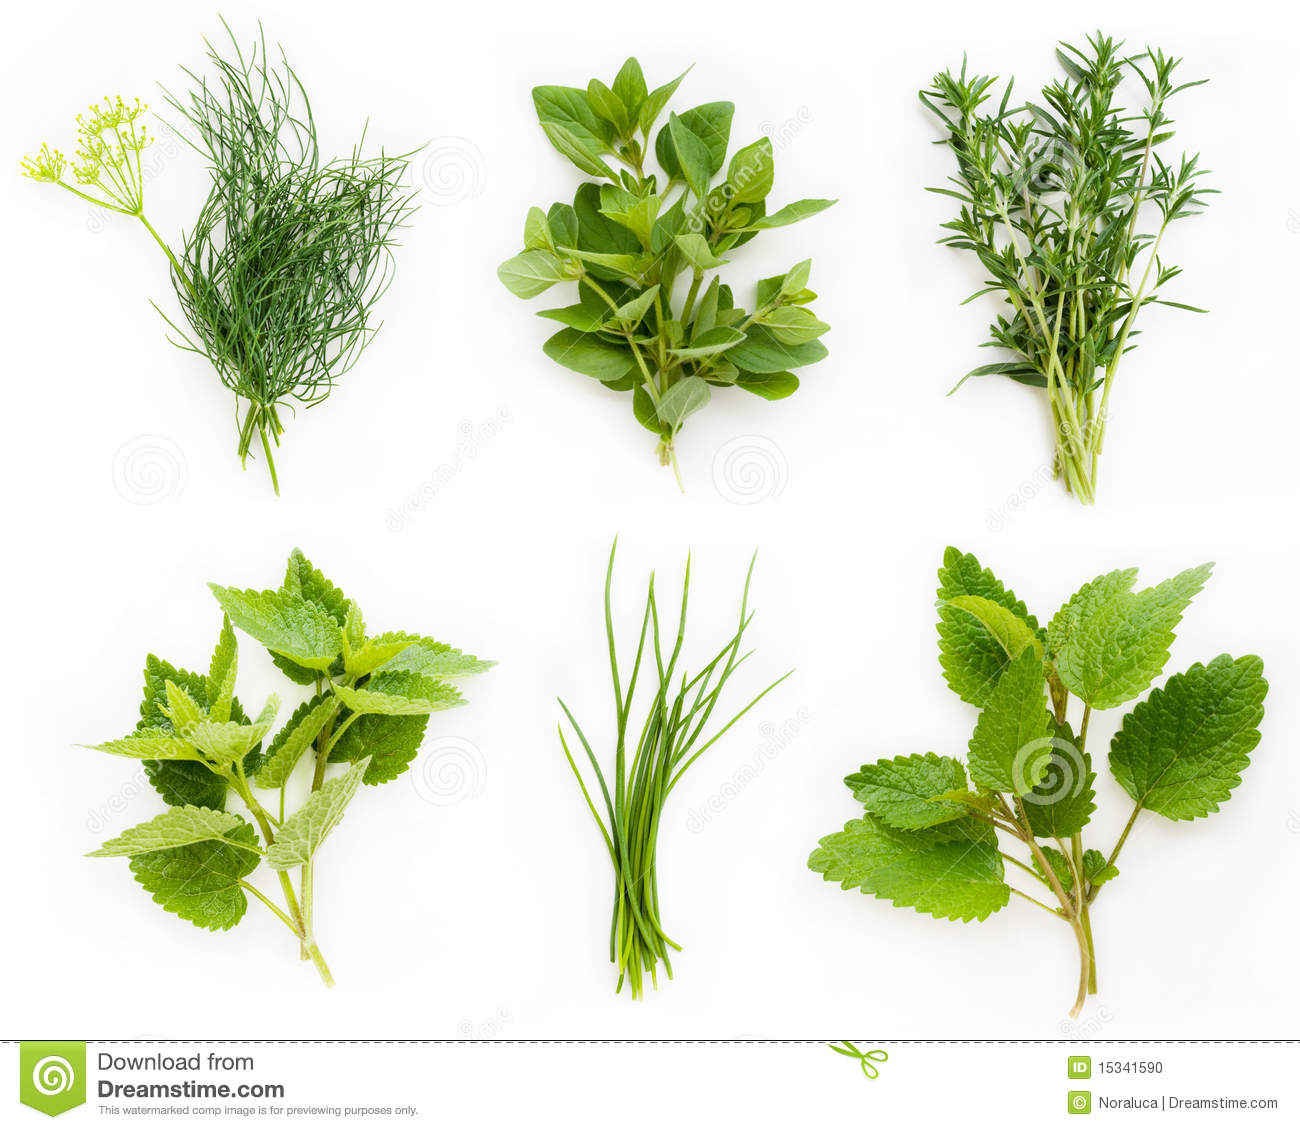 Collection of fresh herbs